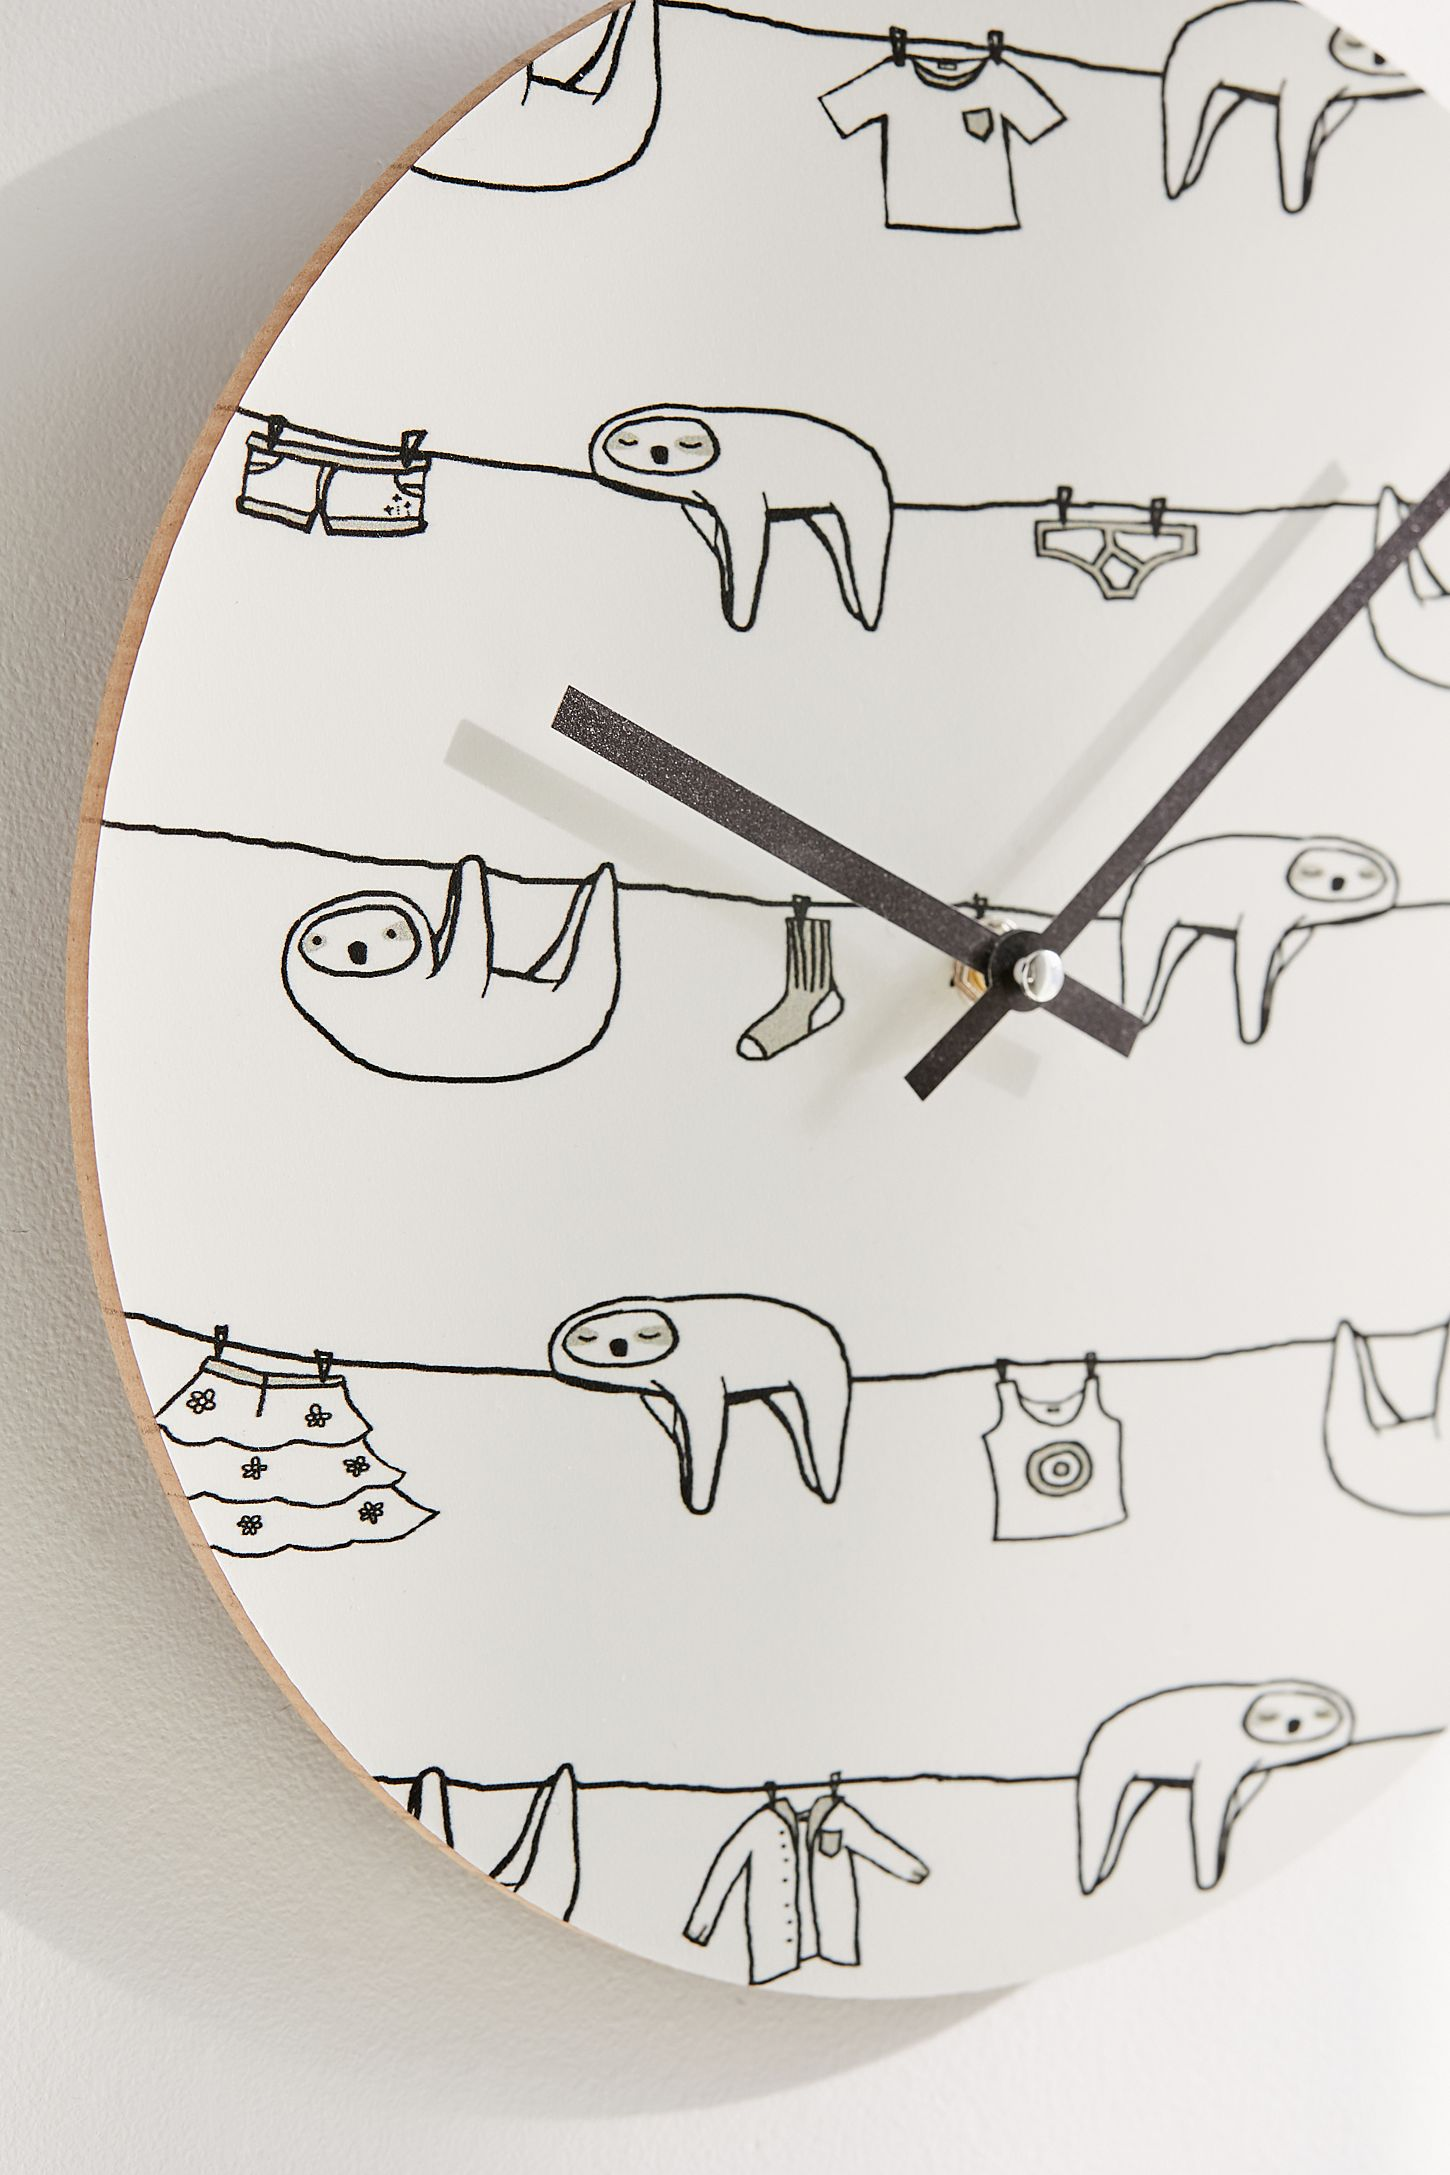 Sloths of love for deny sloth laundry time 12 wall clock urban slide view 2 sloths of love for deny sloth laundry time 12 wall ccuart Choice Image